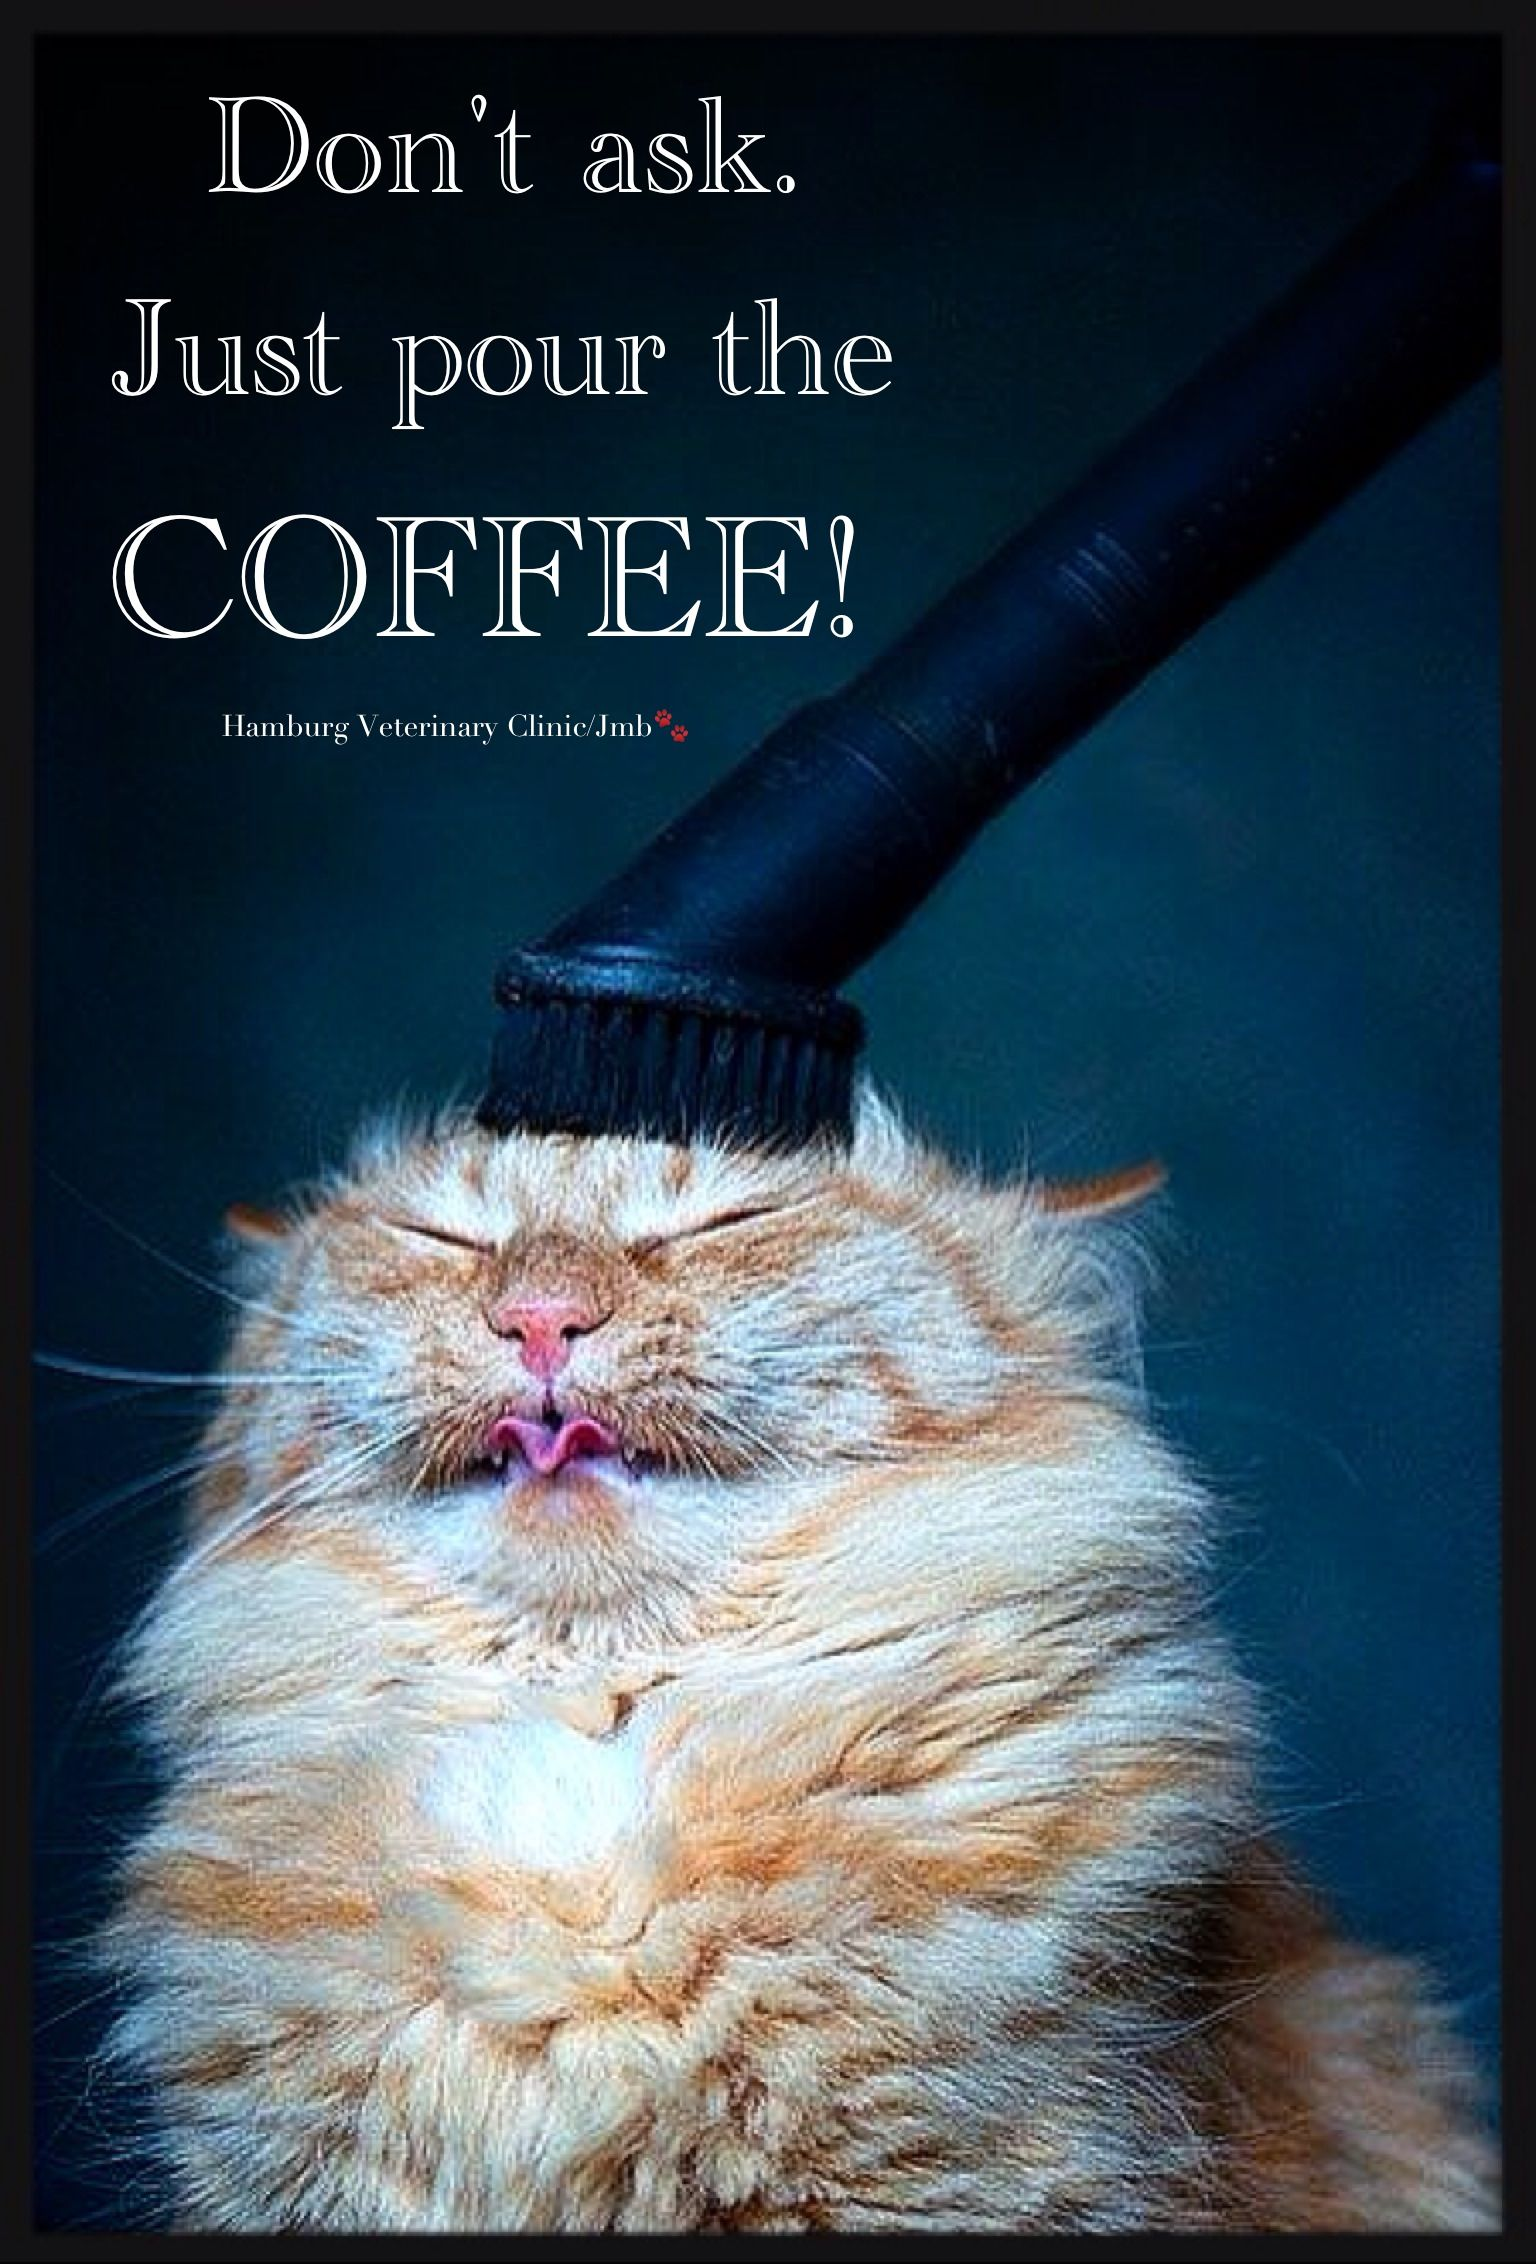 Thursday Humor Another long day working hard Coffee